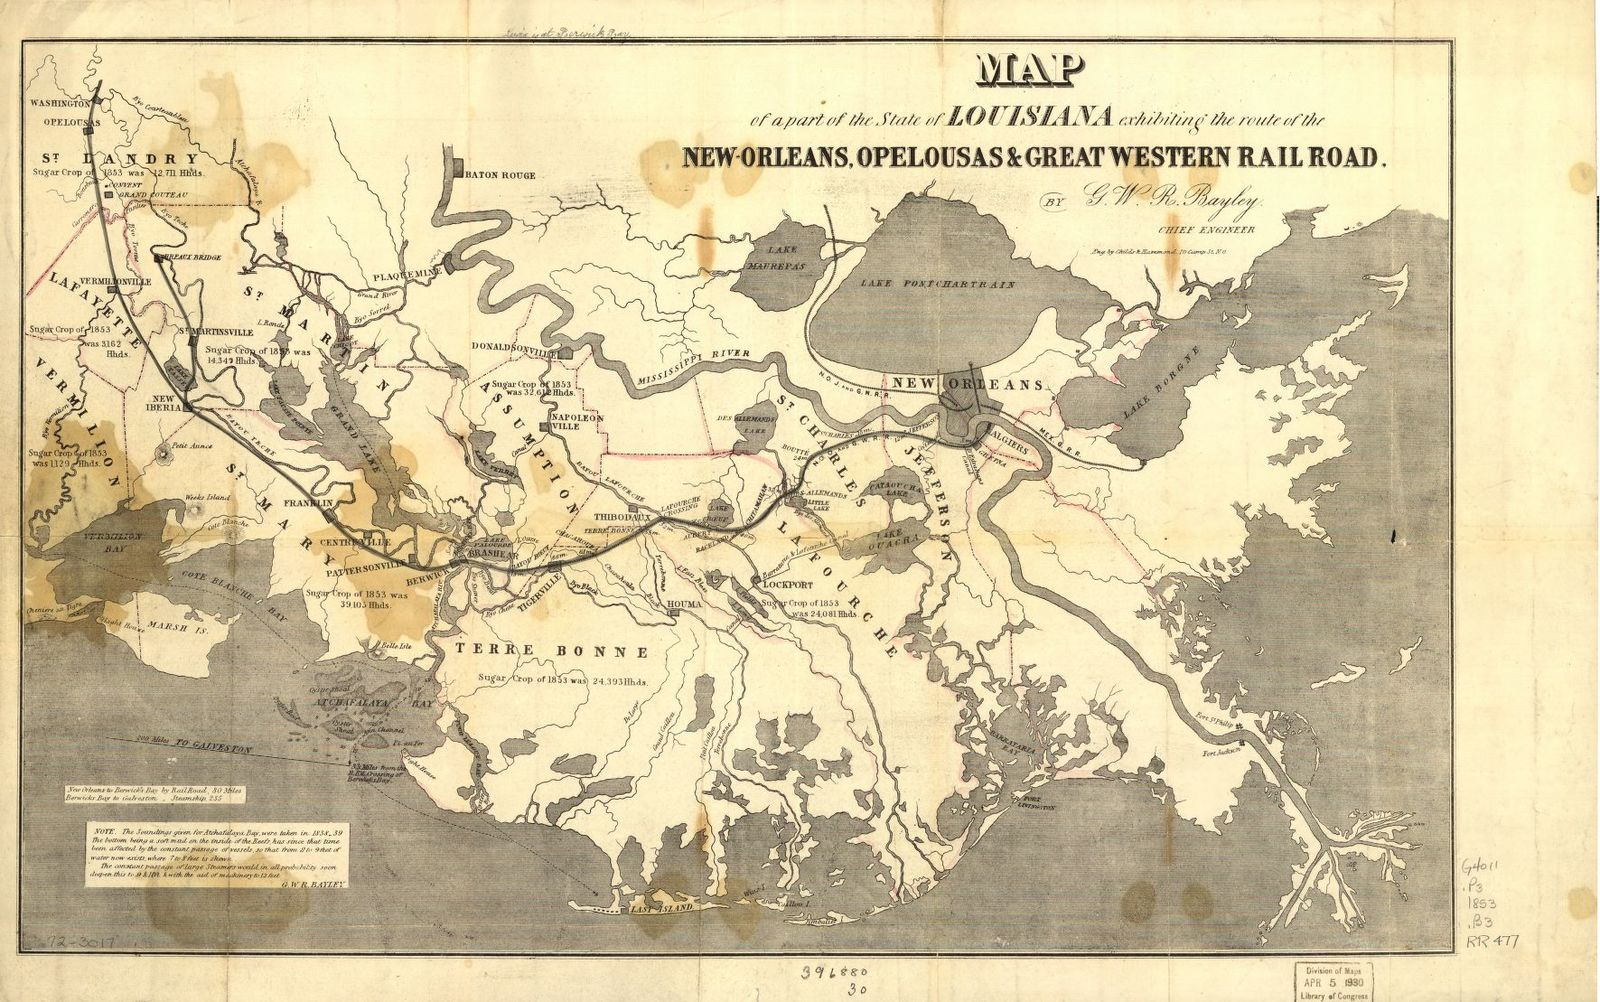 Map of a part of the State of Louisiana exhibiting the route of the New-Orleans, Opelousas & Great Western Rail Road.